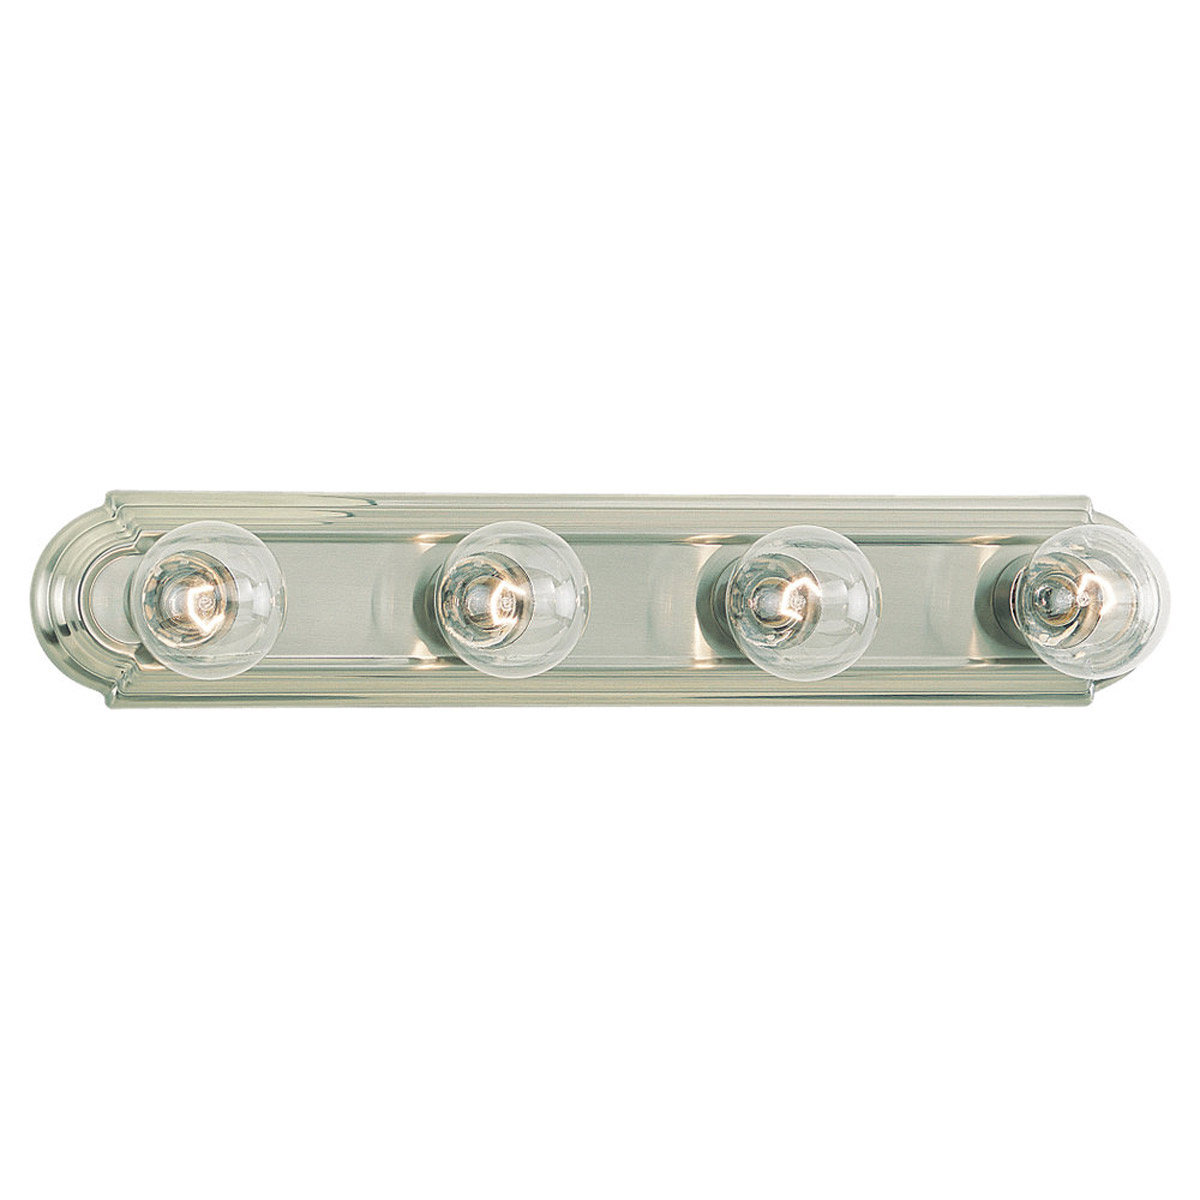 Sea Gull Lighting De-Lovely 4 Light Bath Vanity in Brushed Nickel 4701-962